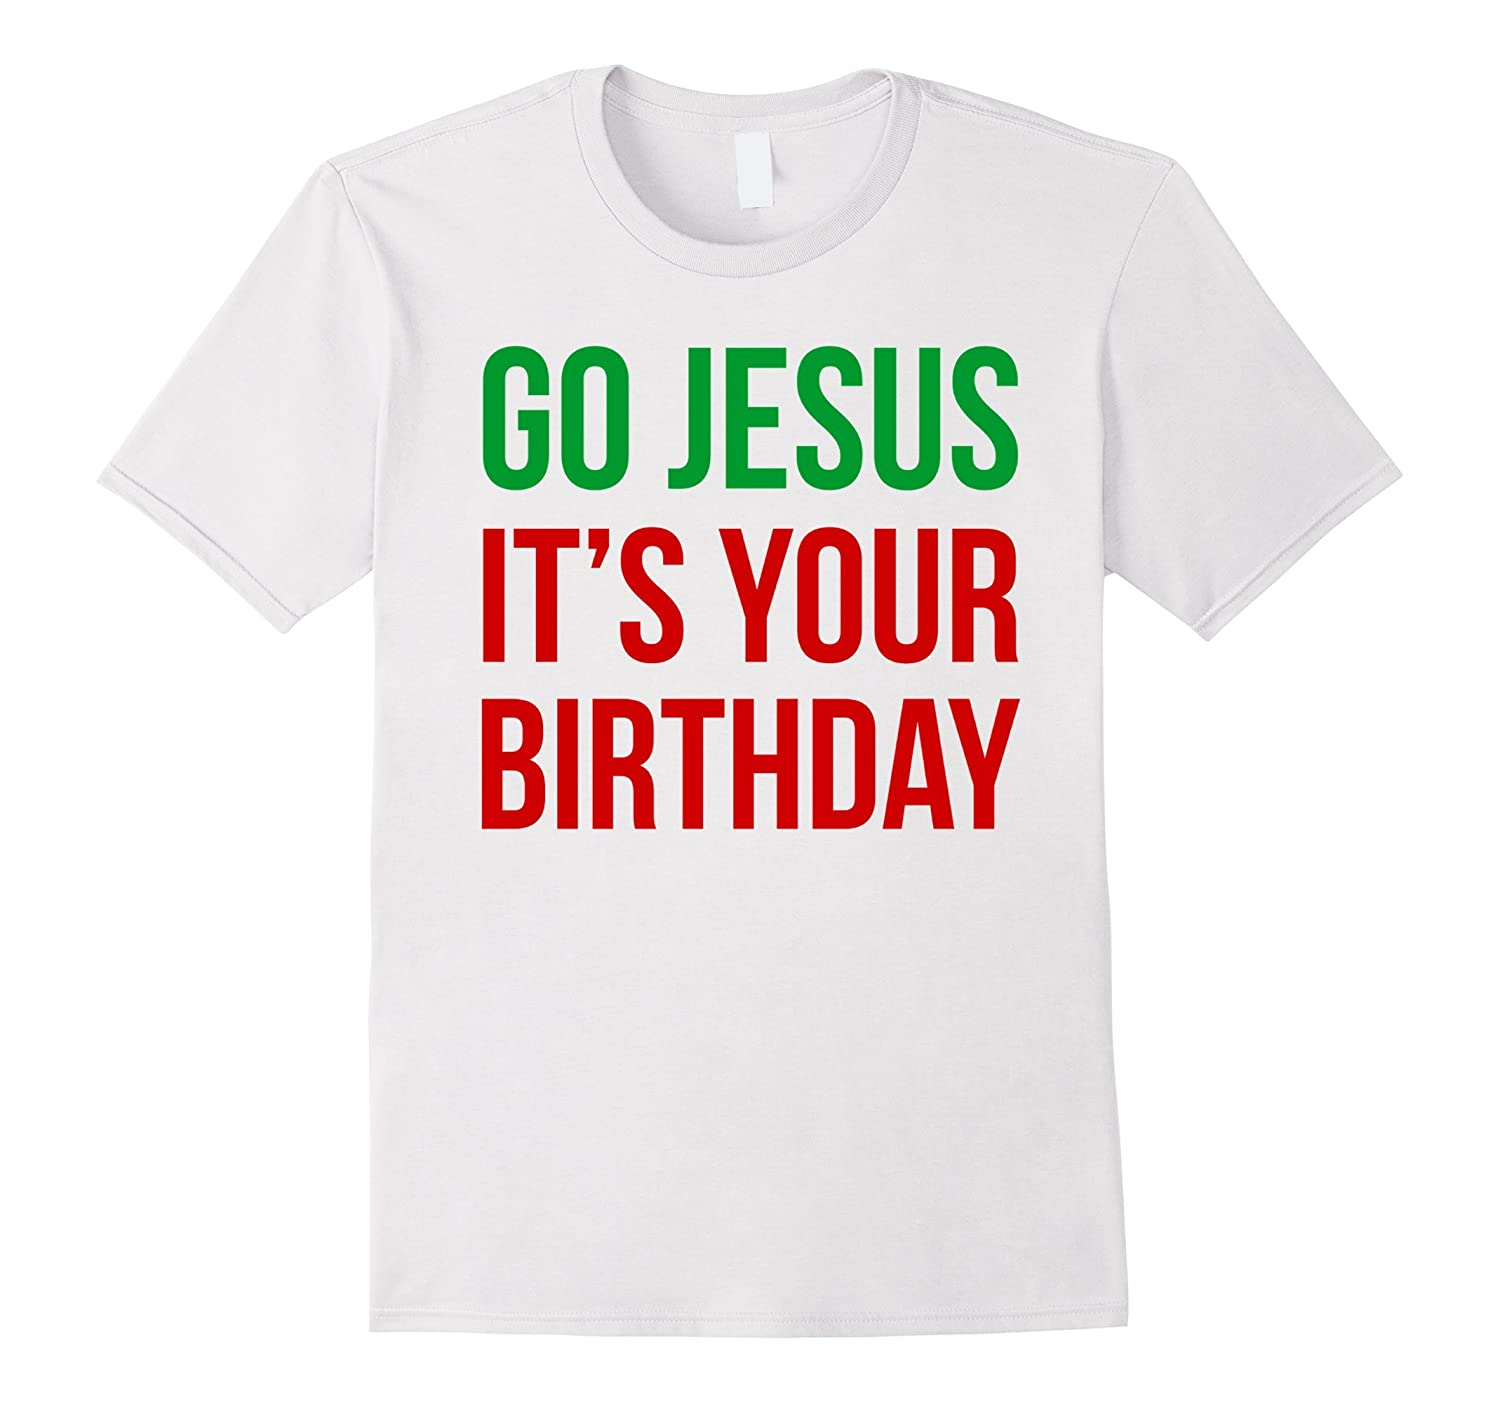 Christmas T-shirt - Go Jesus It's Your Birthday-azvn